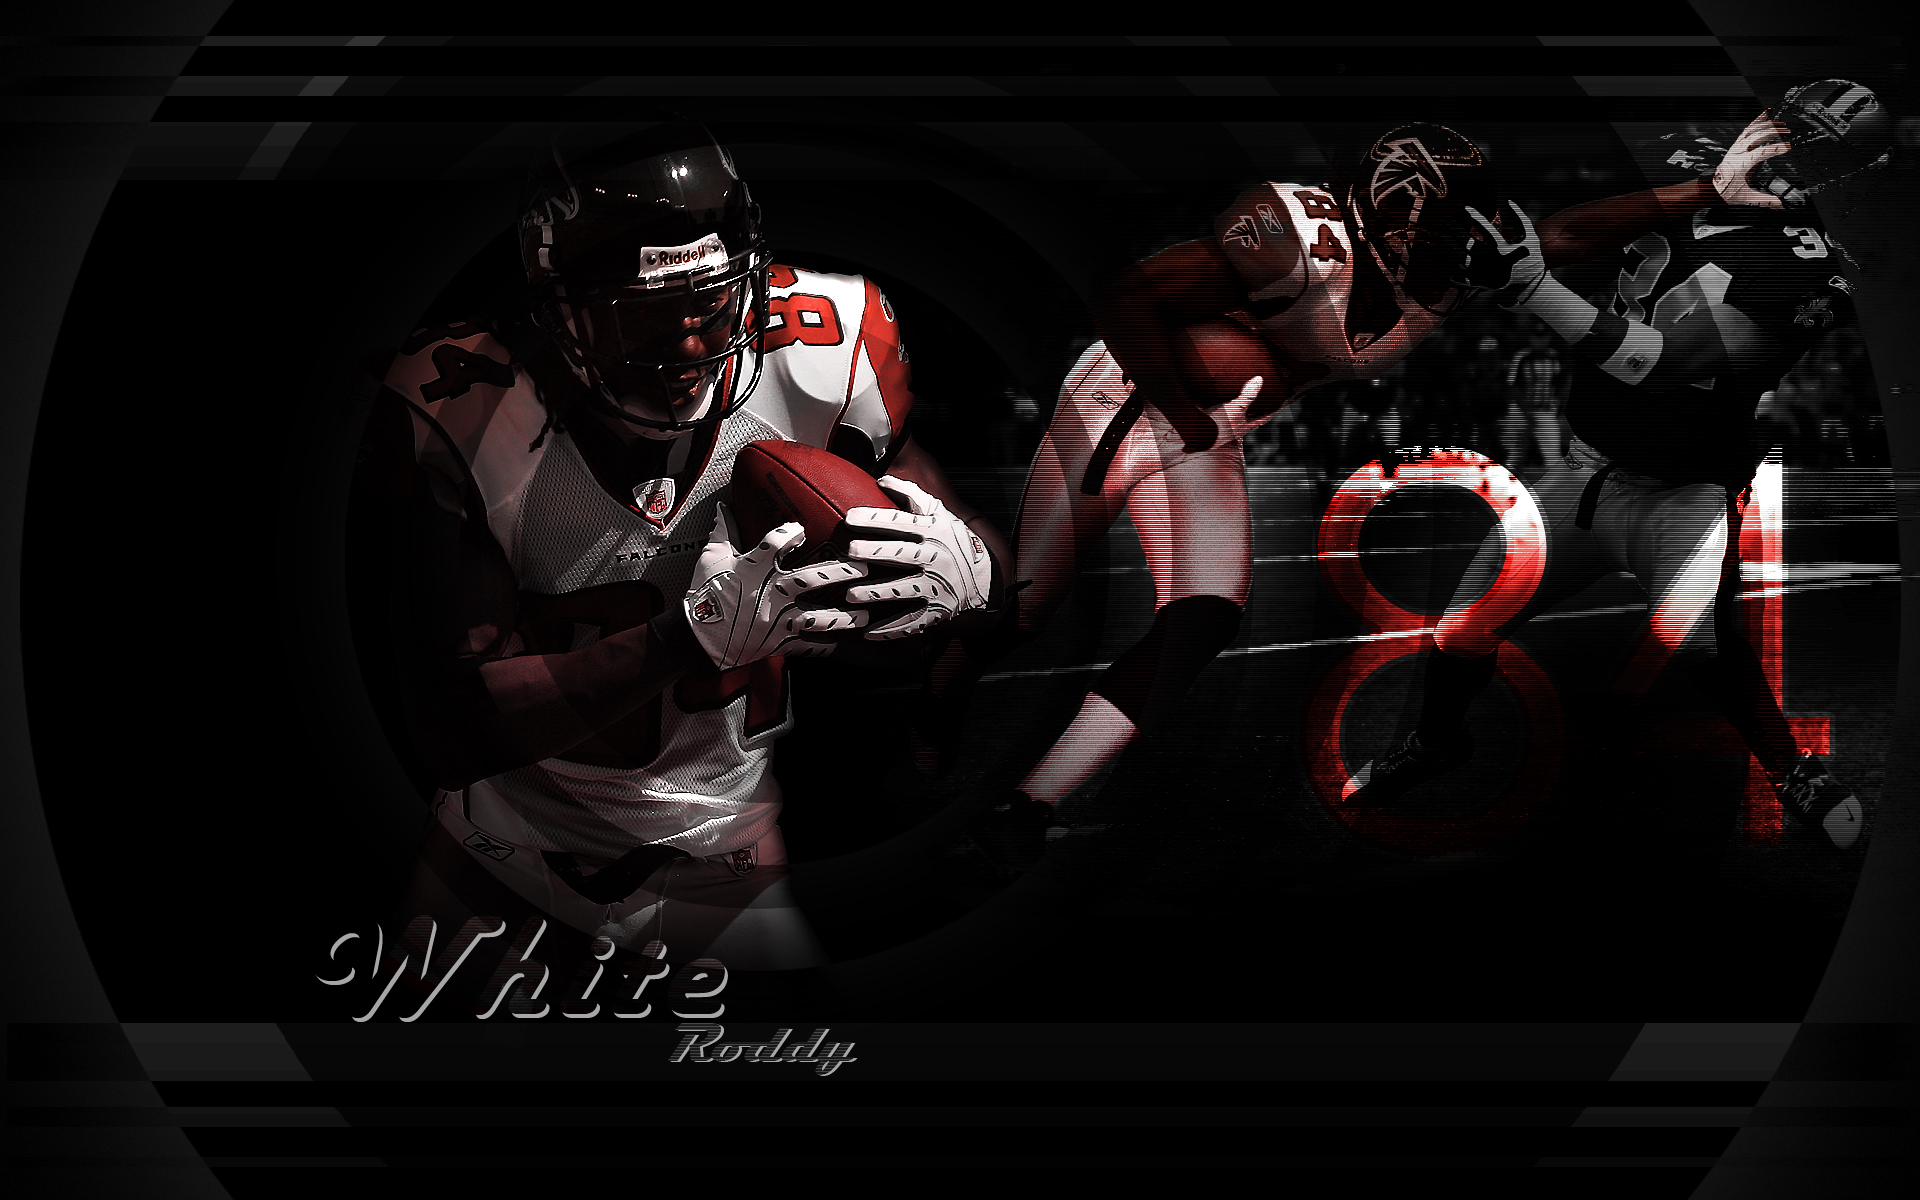 Roddy-white-julio-jones-atlanta-falcons-wallpapers